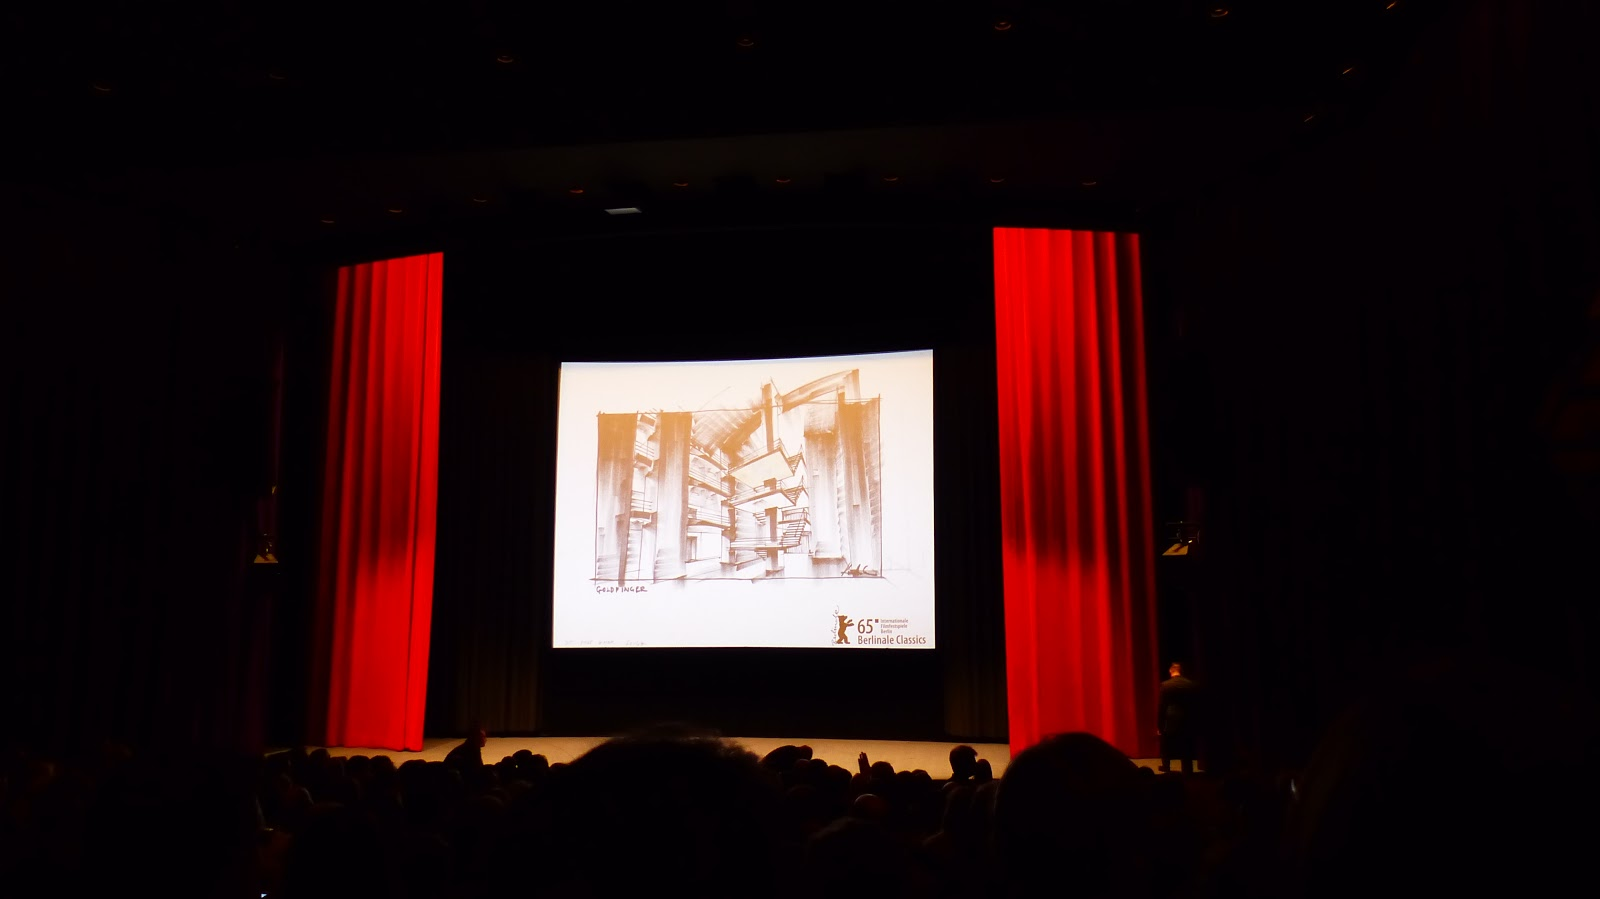 The stage and screen of Haus der Festspiele at the GOLDFINGER 4K Premiere / Photo: Benjamin Lind